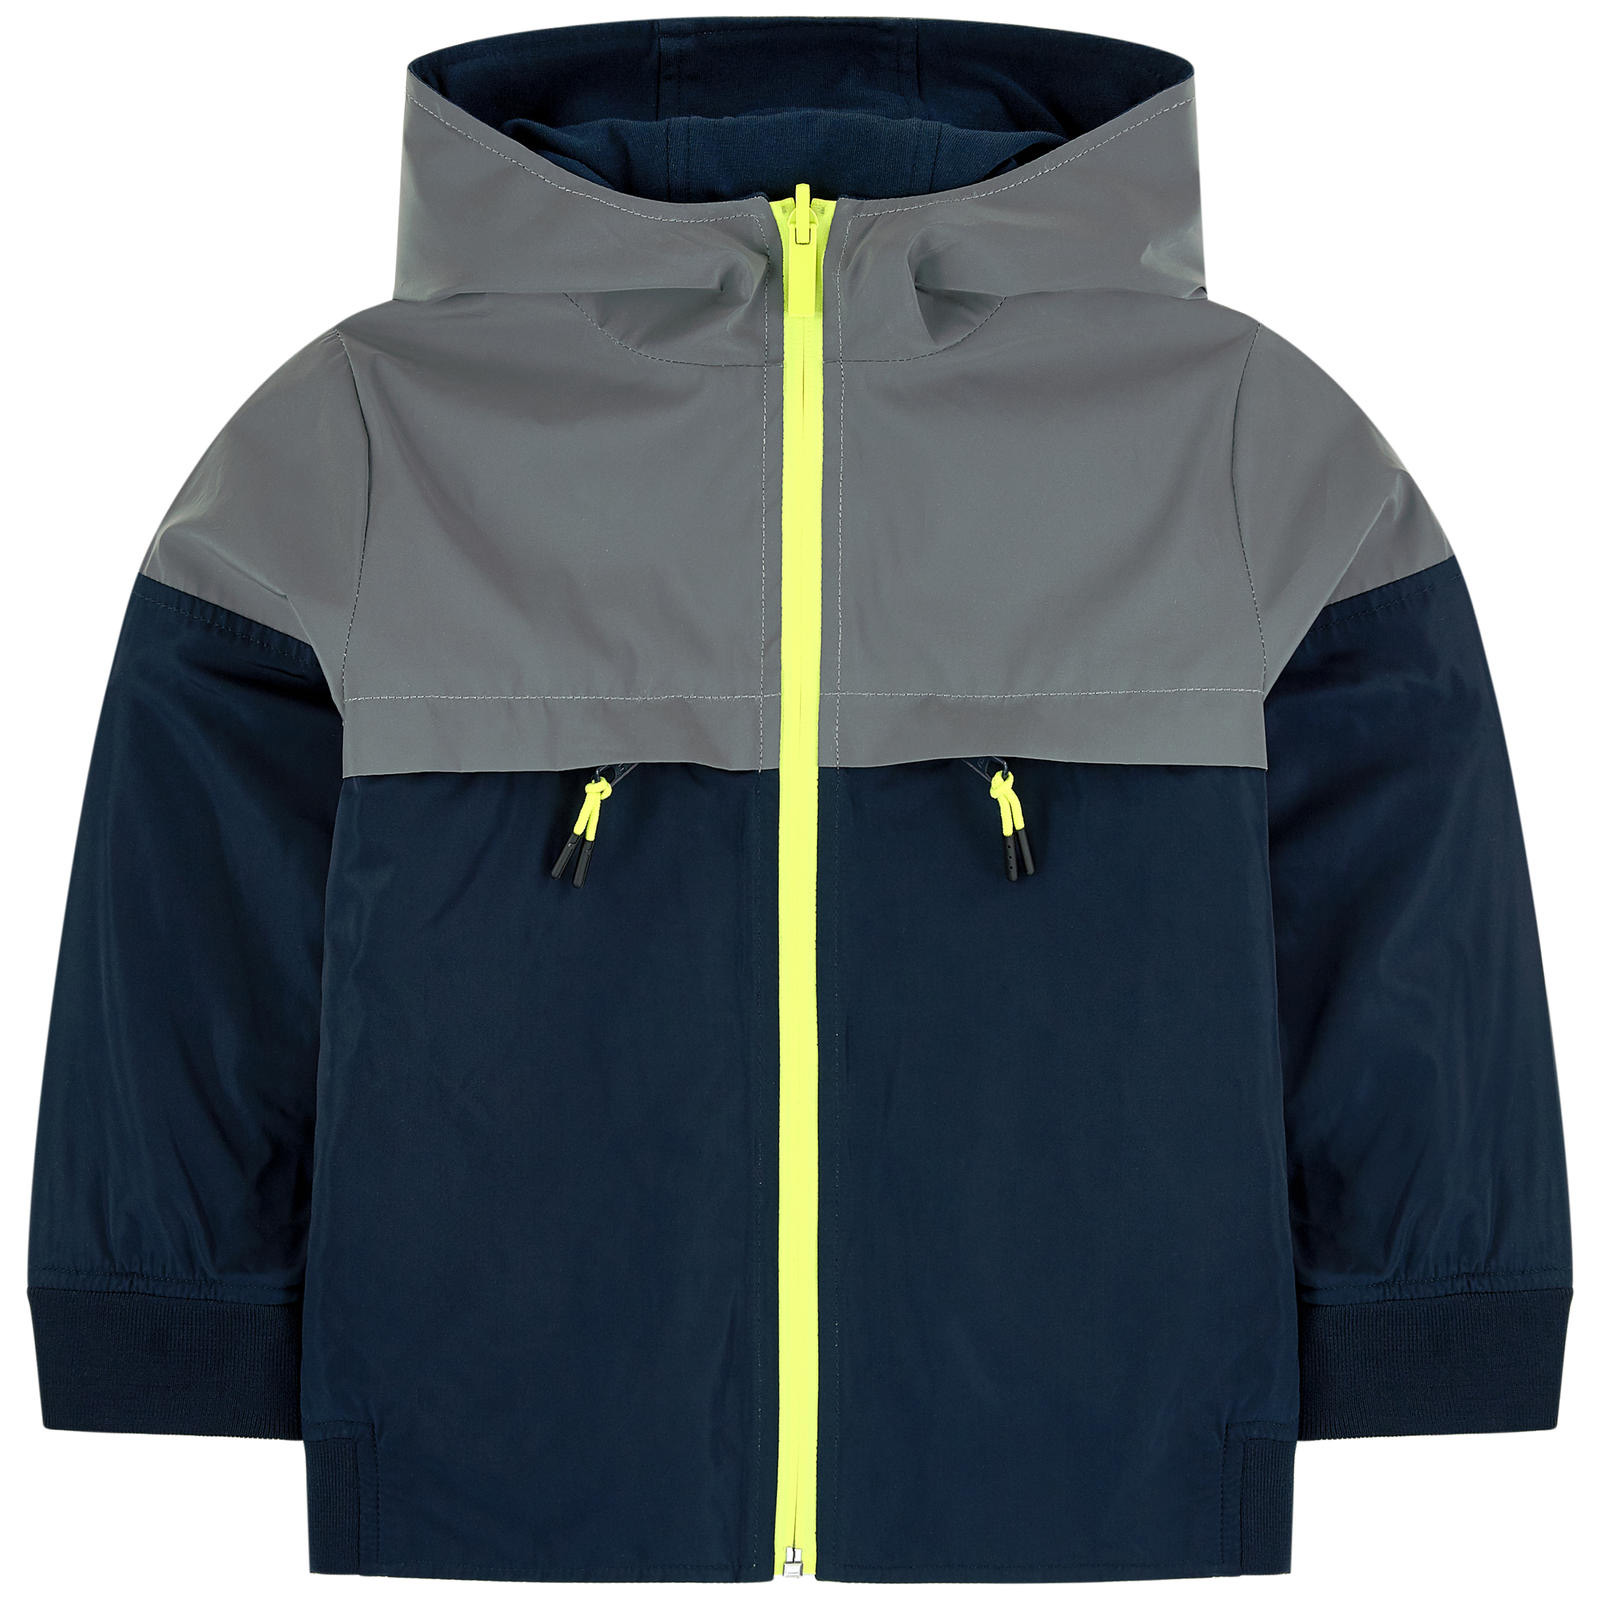 Relektierende Kindemode Jacke von Paul Smith